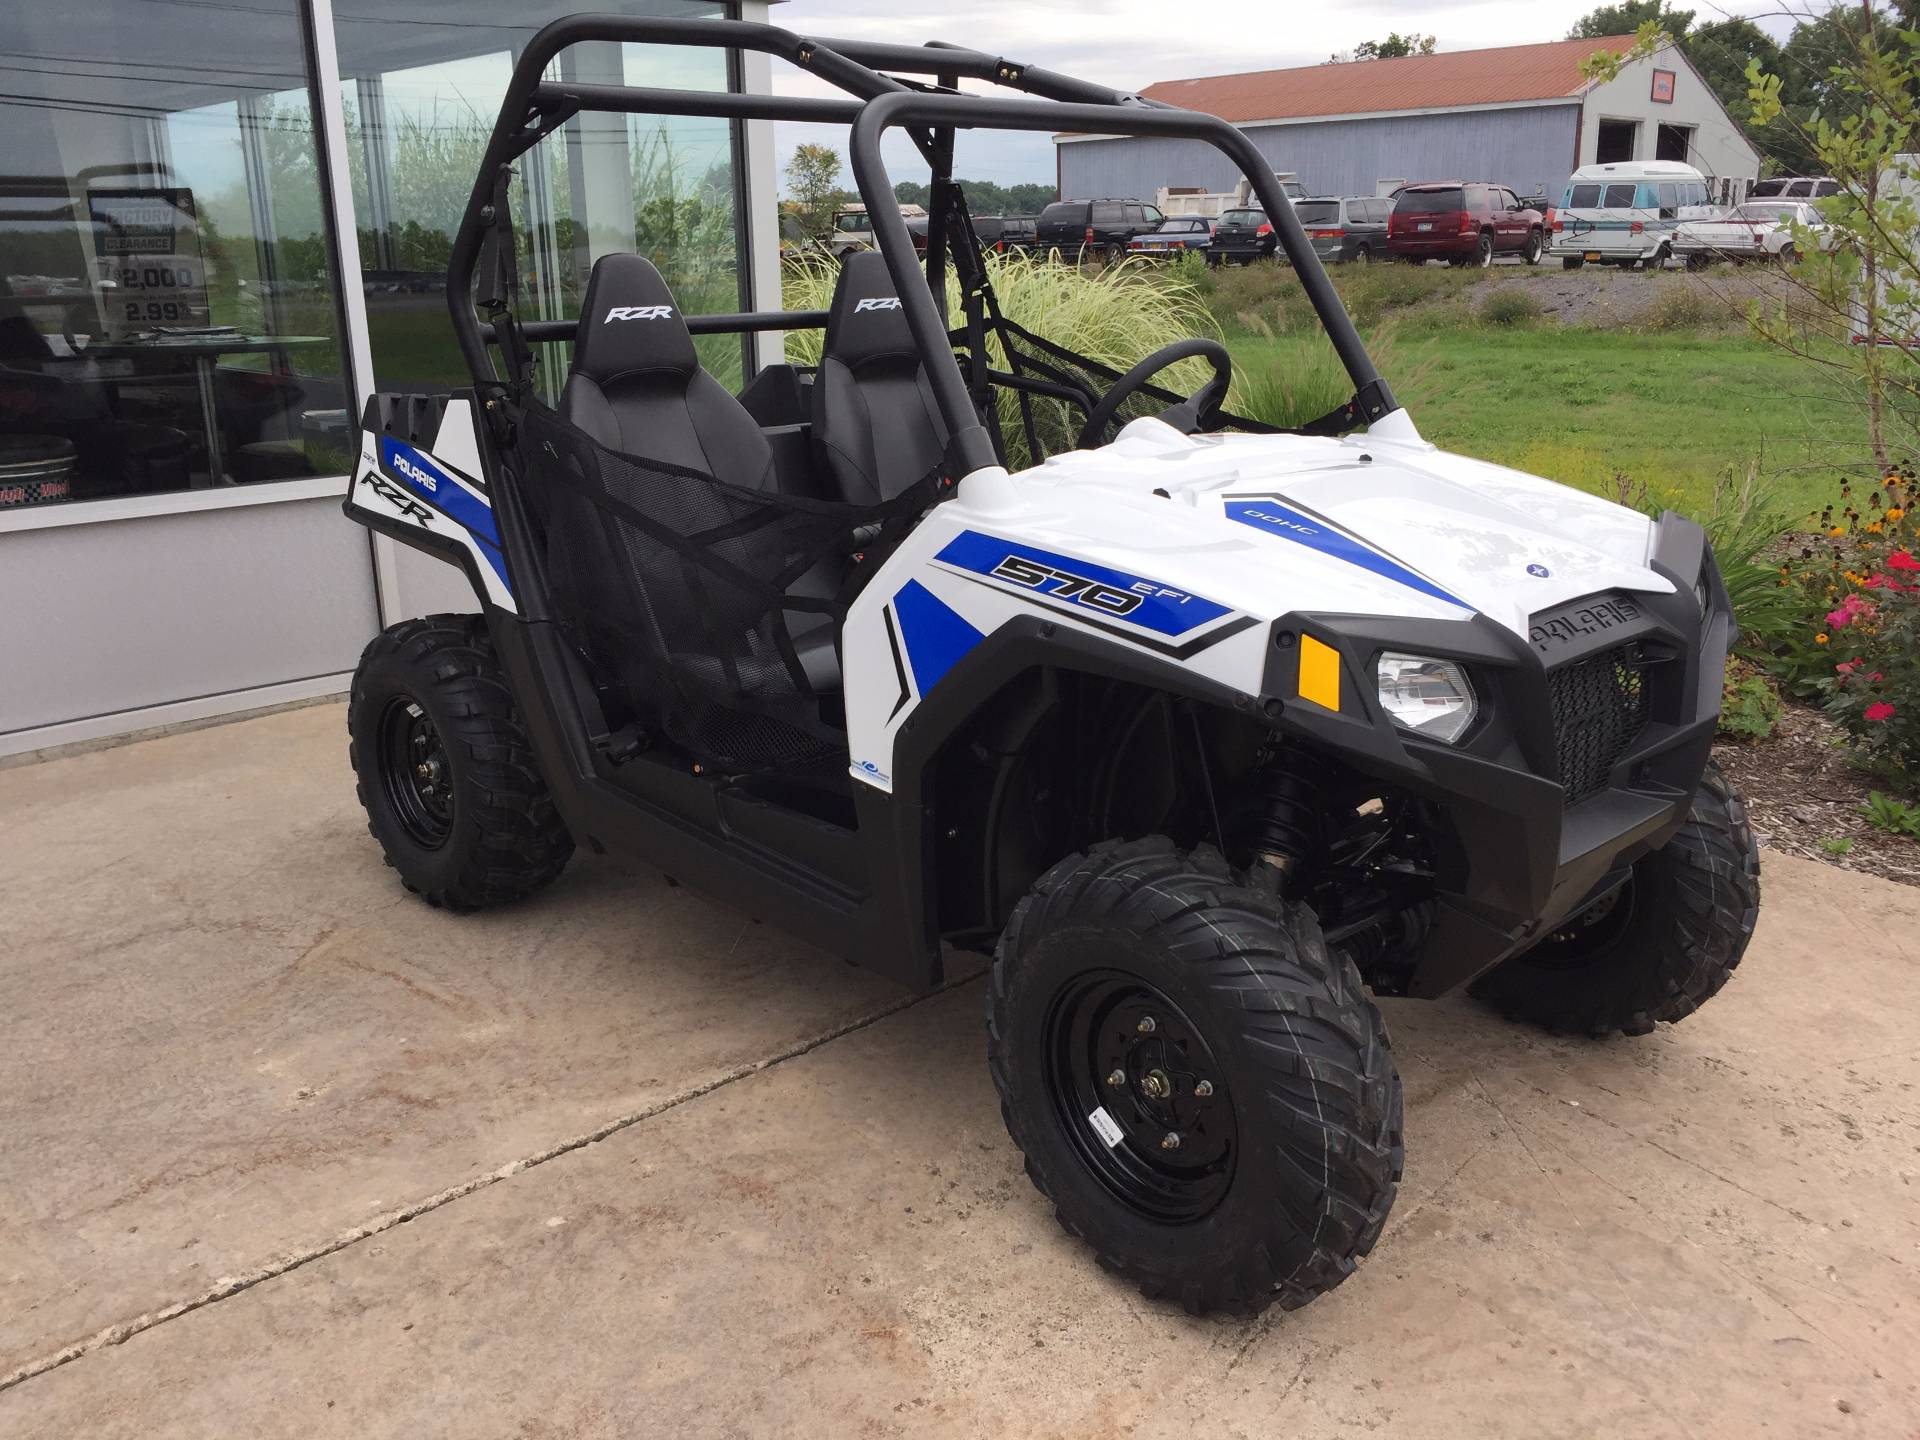 2017 Polaris RZR 570 in Brewerton, New York